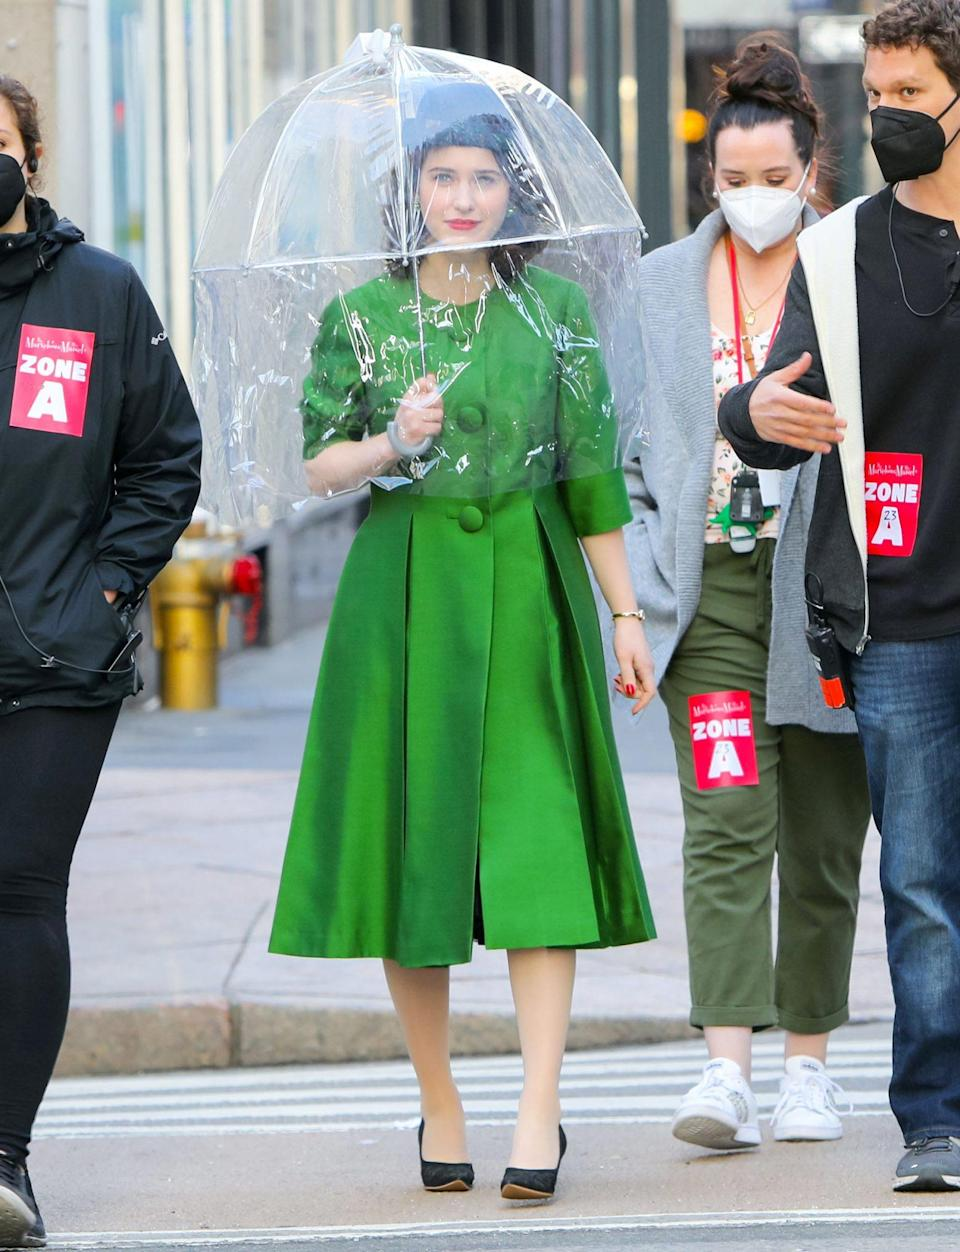 <p>Rachel Brosnahan wears a vibrant green satin dress and a bold red lip on the set of <em>The Marvelous Mrs. Maisel</em> on Tuesday in N.Y.C.</p>